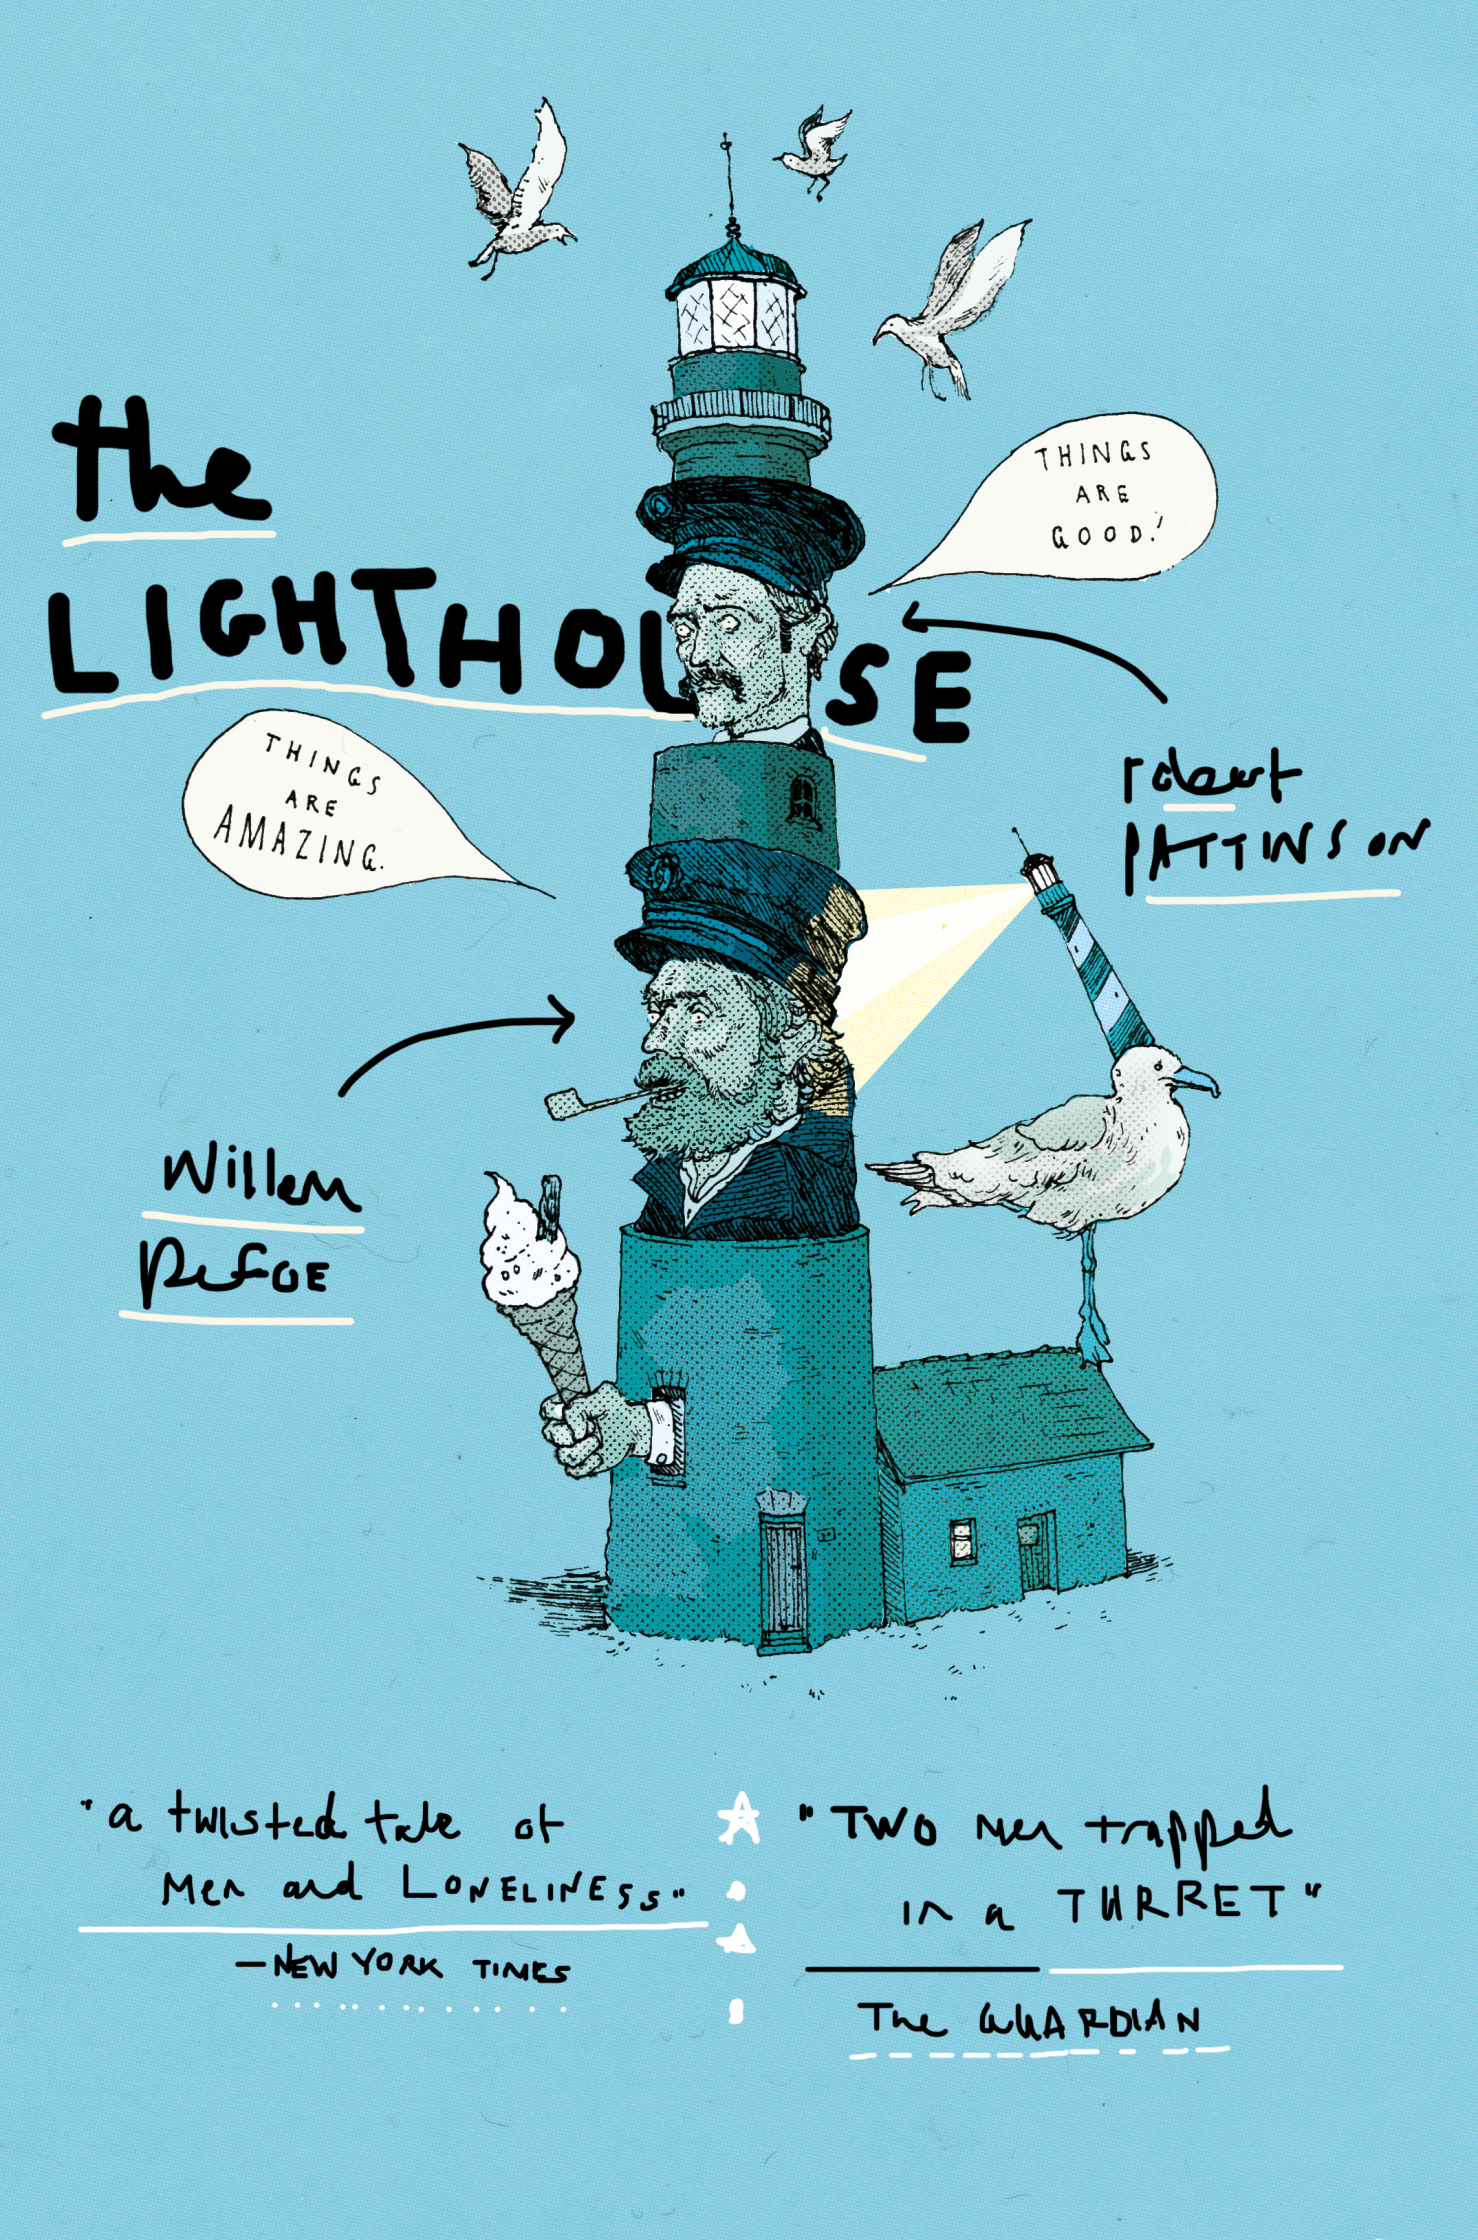 THE LIGHTHOUSE_Self-initiated film poster.jpg